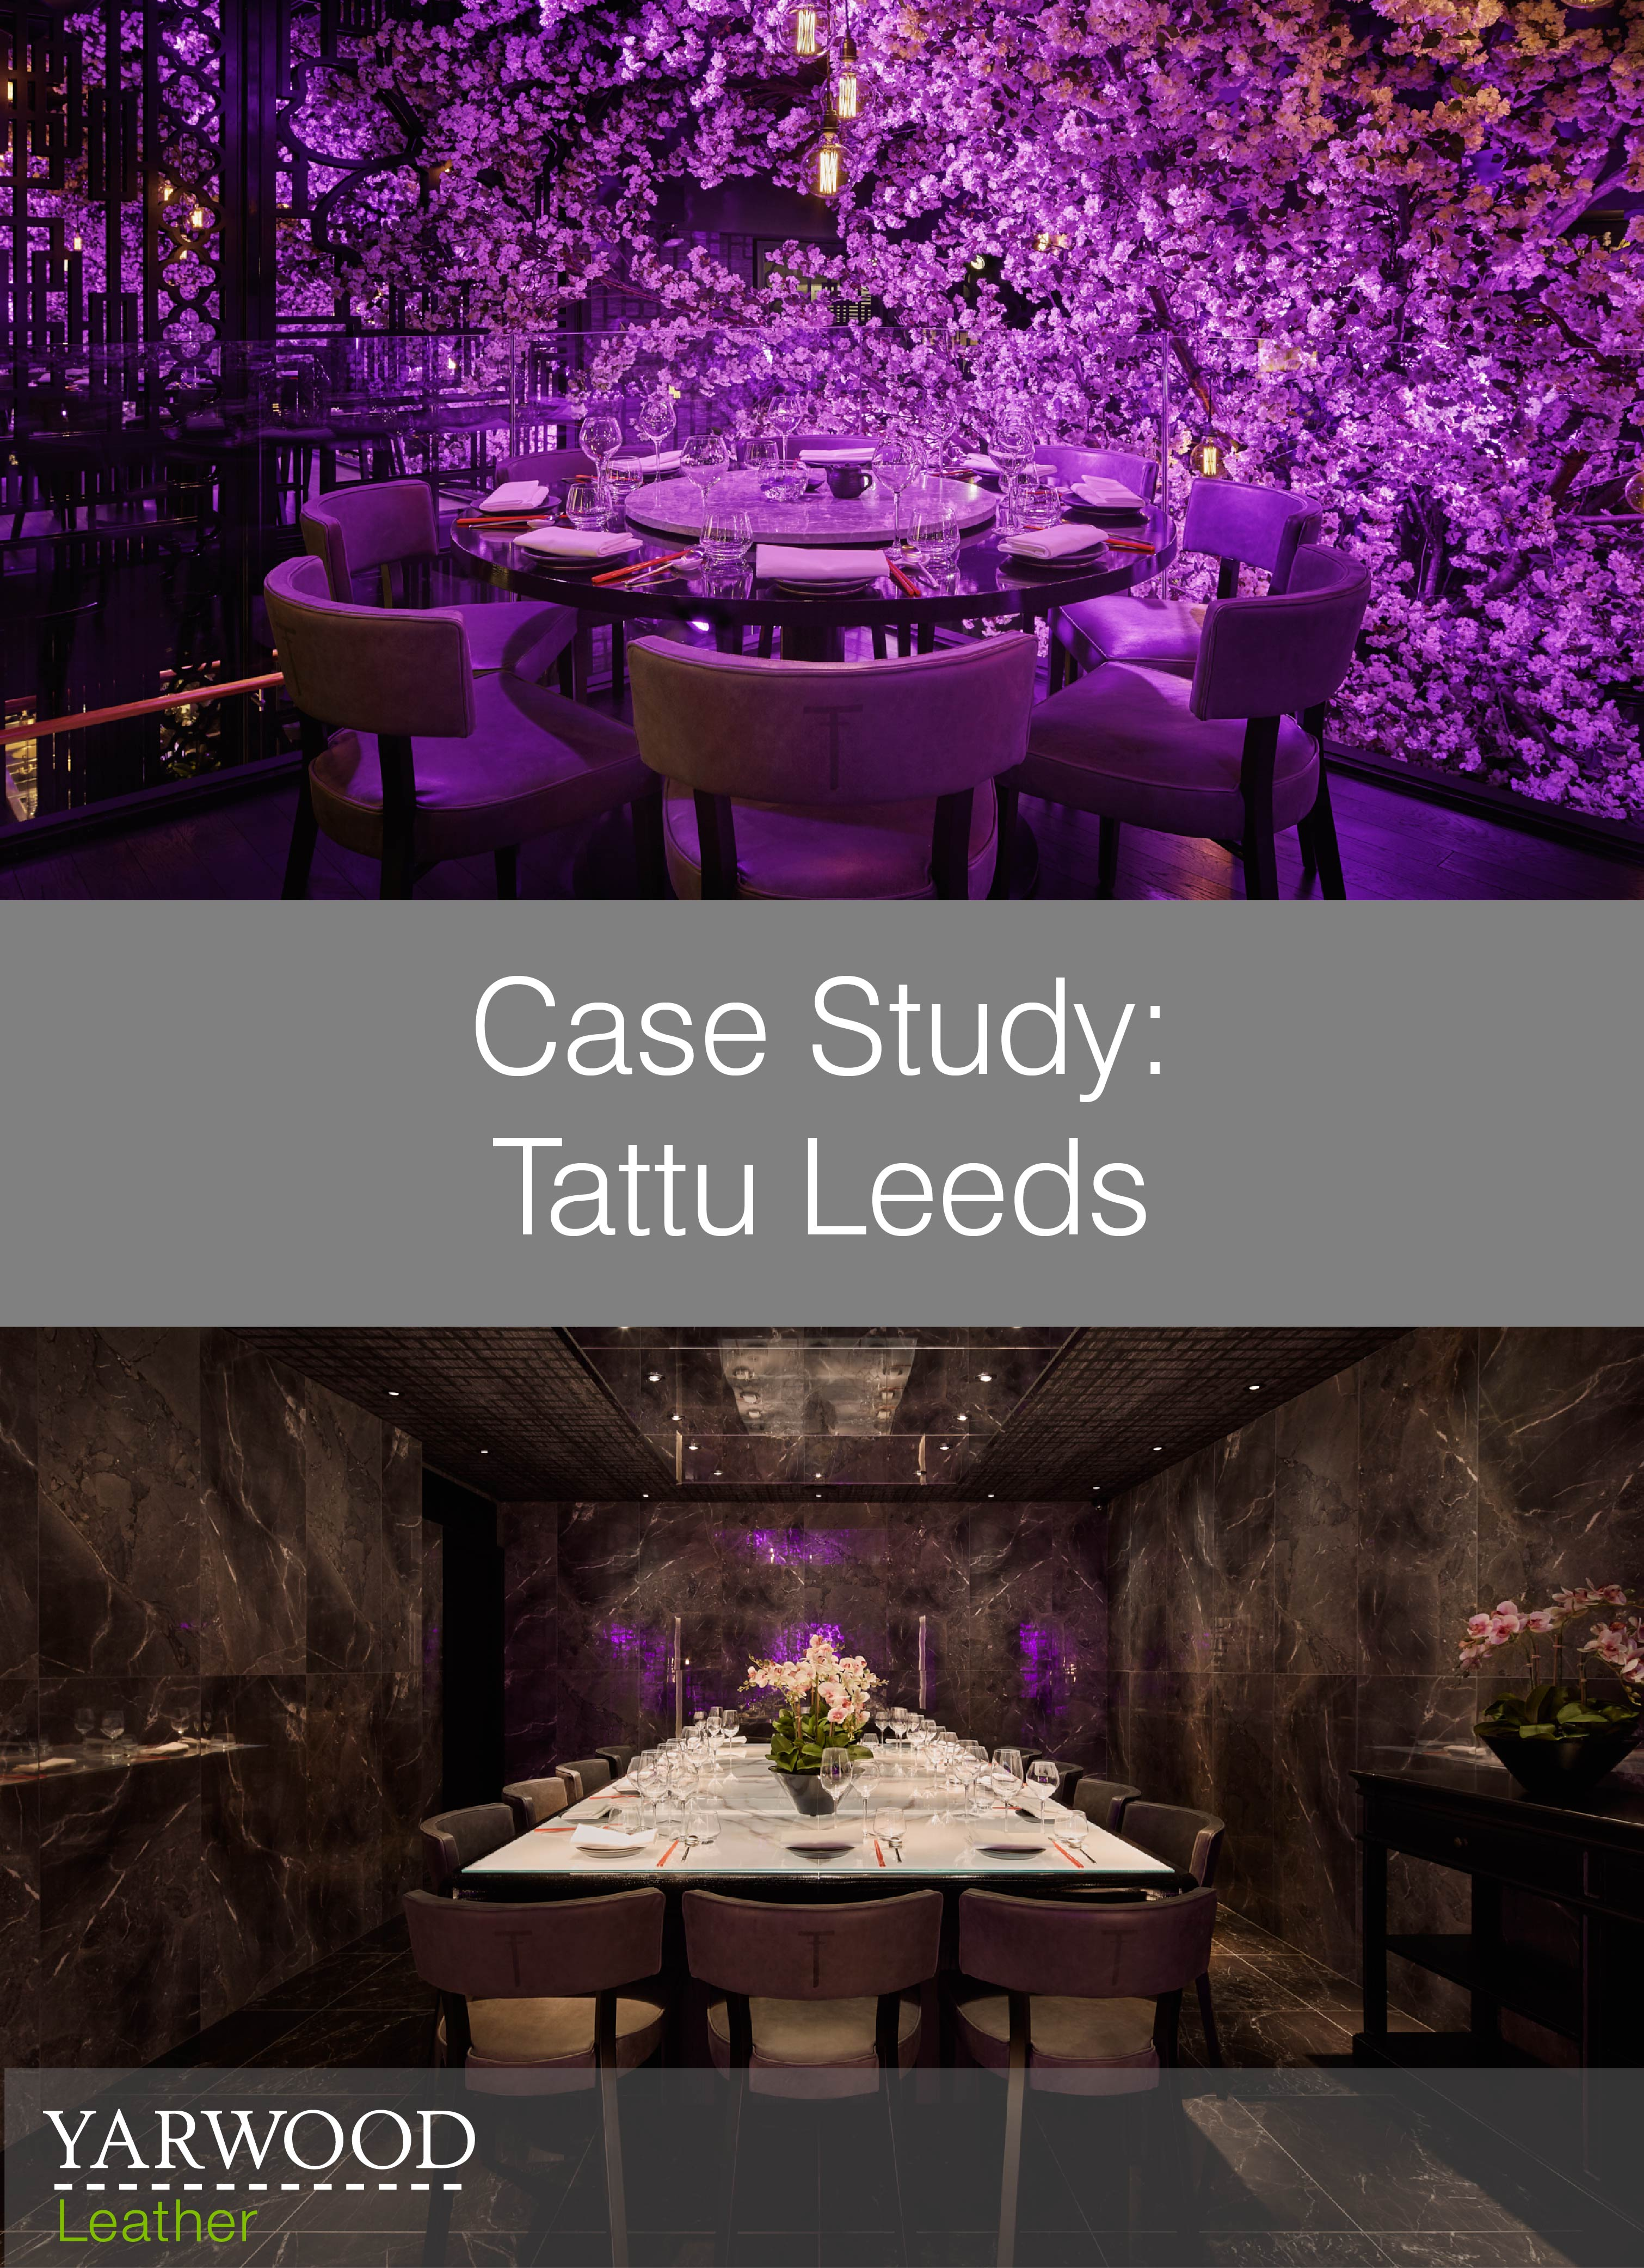 Chinese cuisine in a setting inspired by body art, read about Tattu Leeds